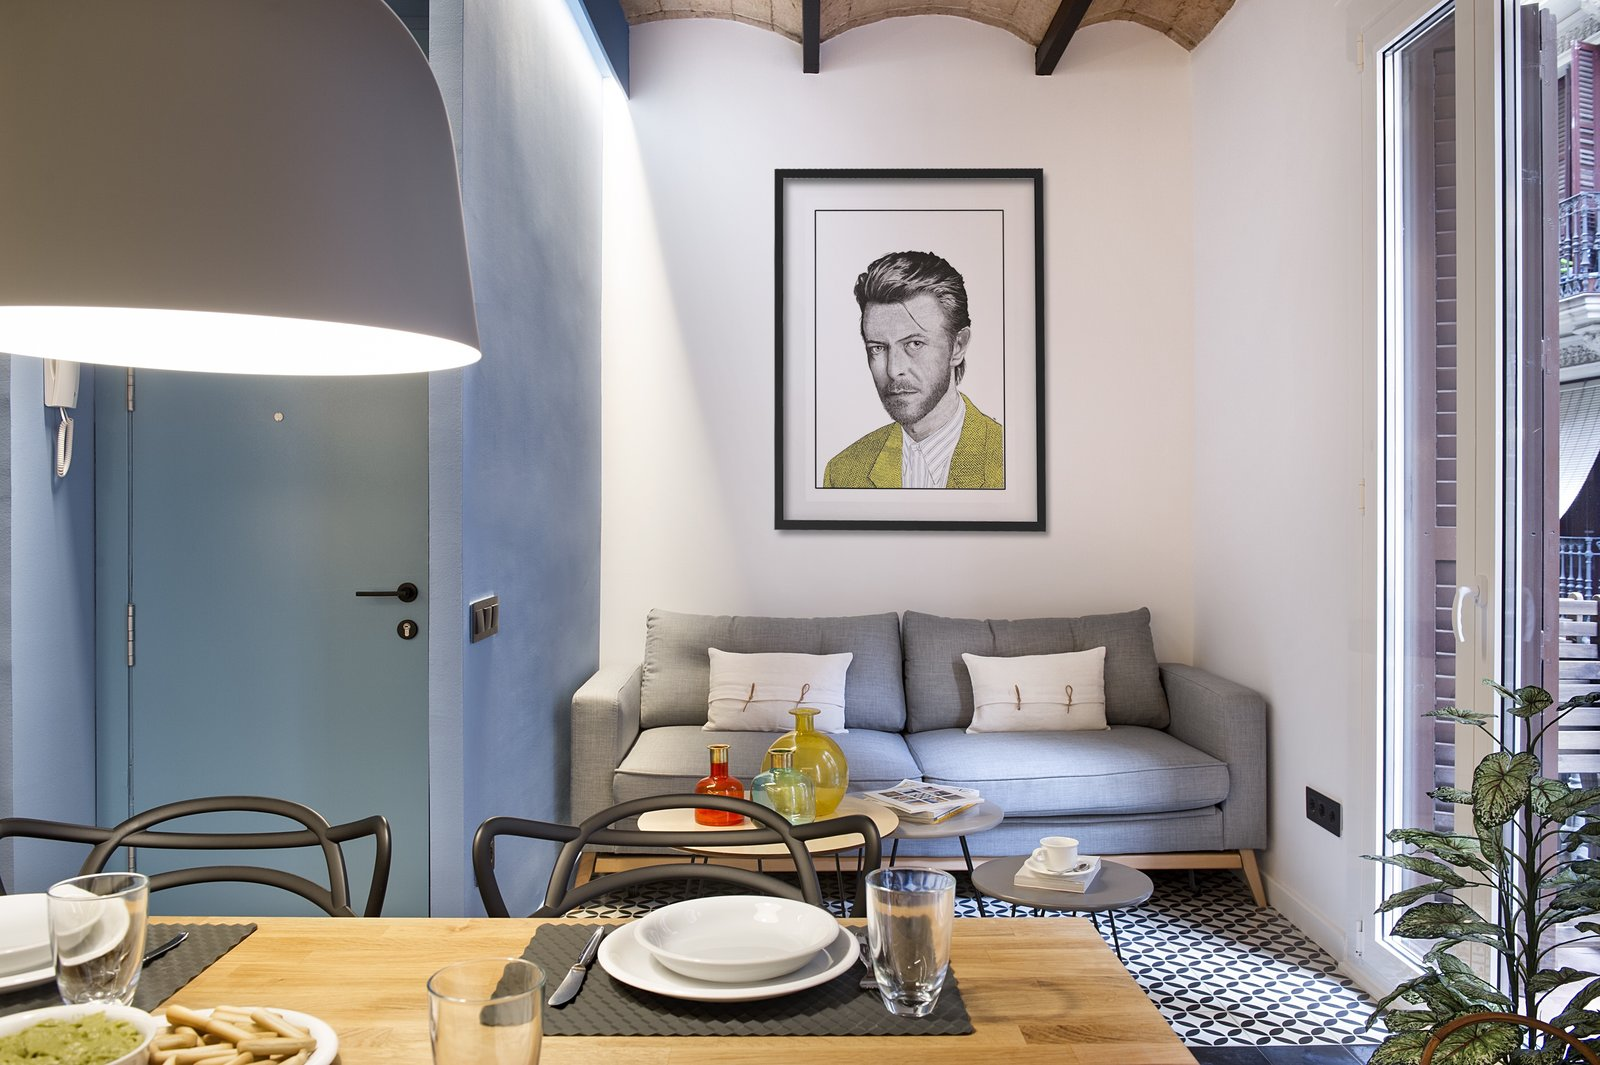 A Smart Layout Maximizes Space in This Compact Urban Beach Apartment in Barcelona